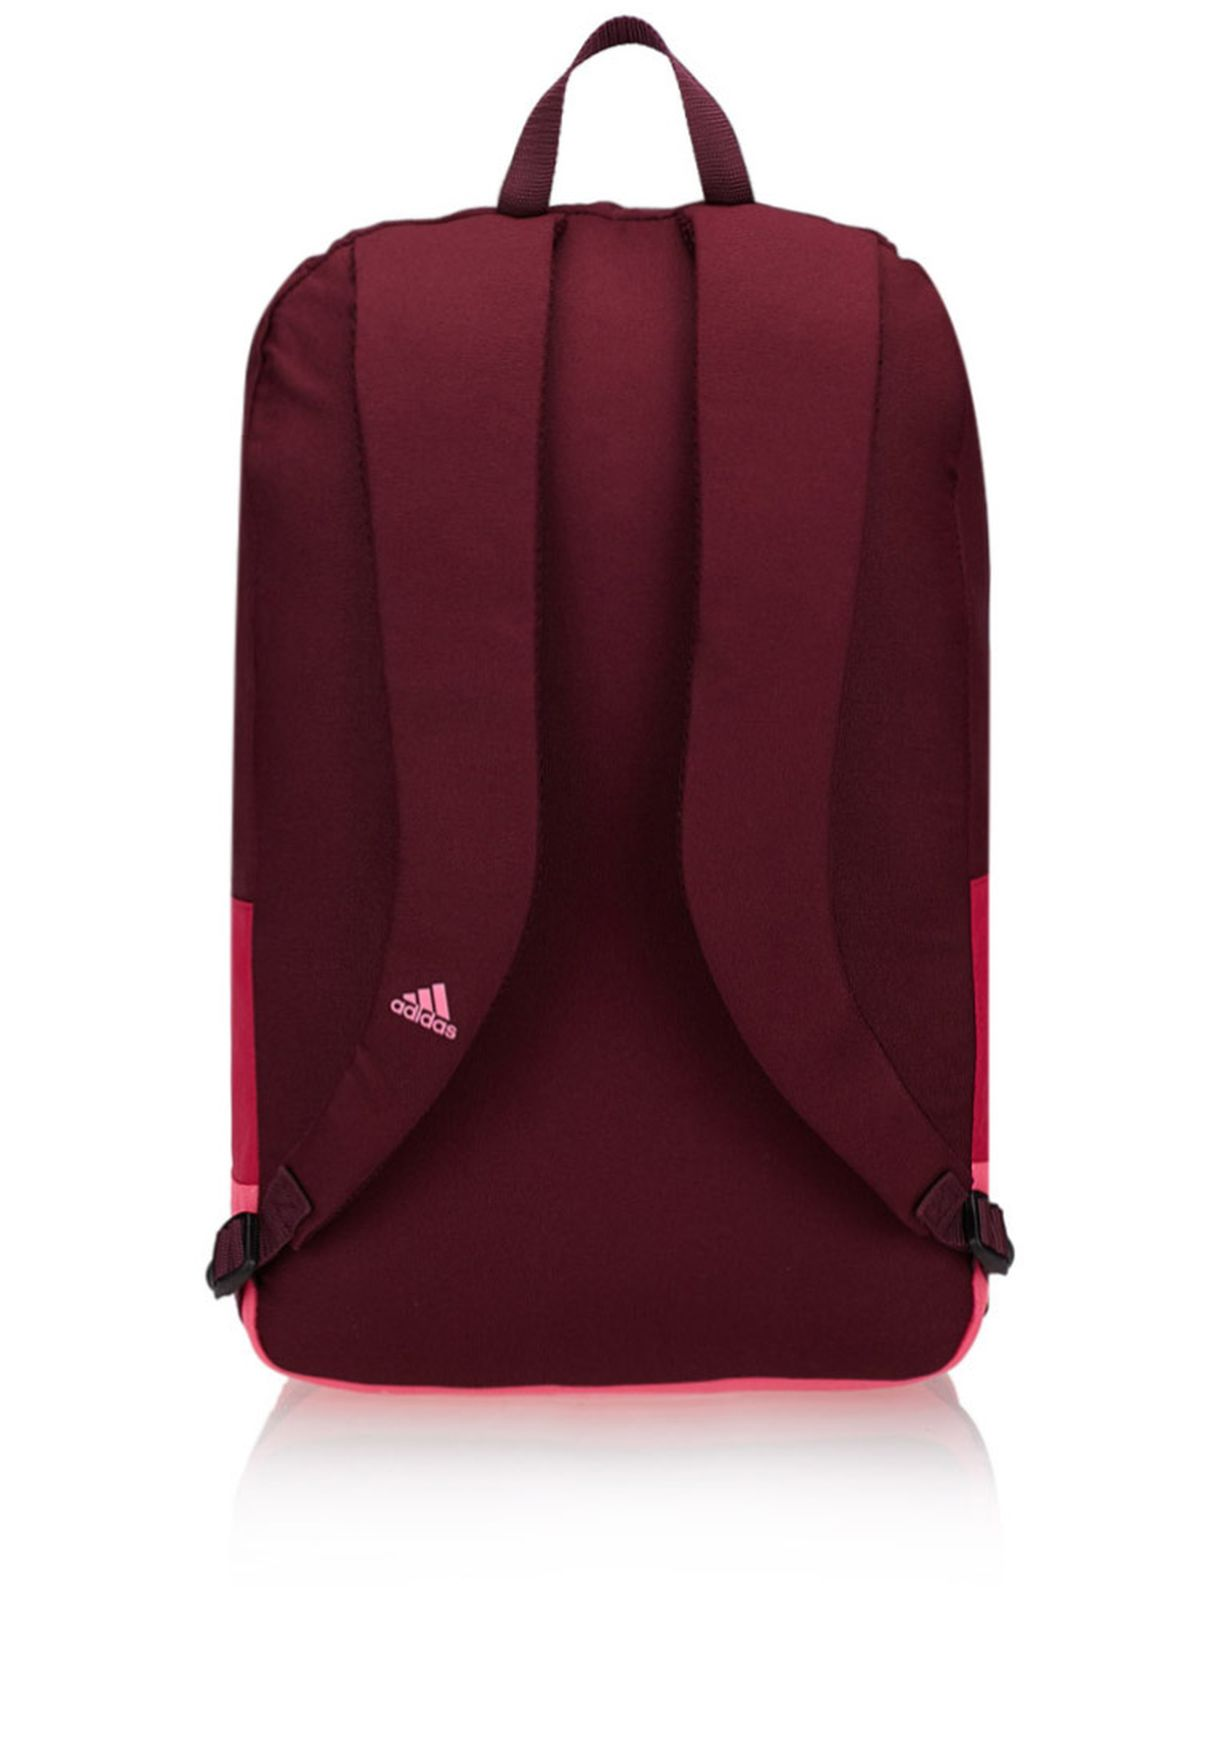 bf1b37ec62a6 Shop adidas red Versatile Block Backpack M66756 for Women in ...